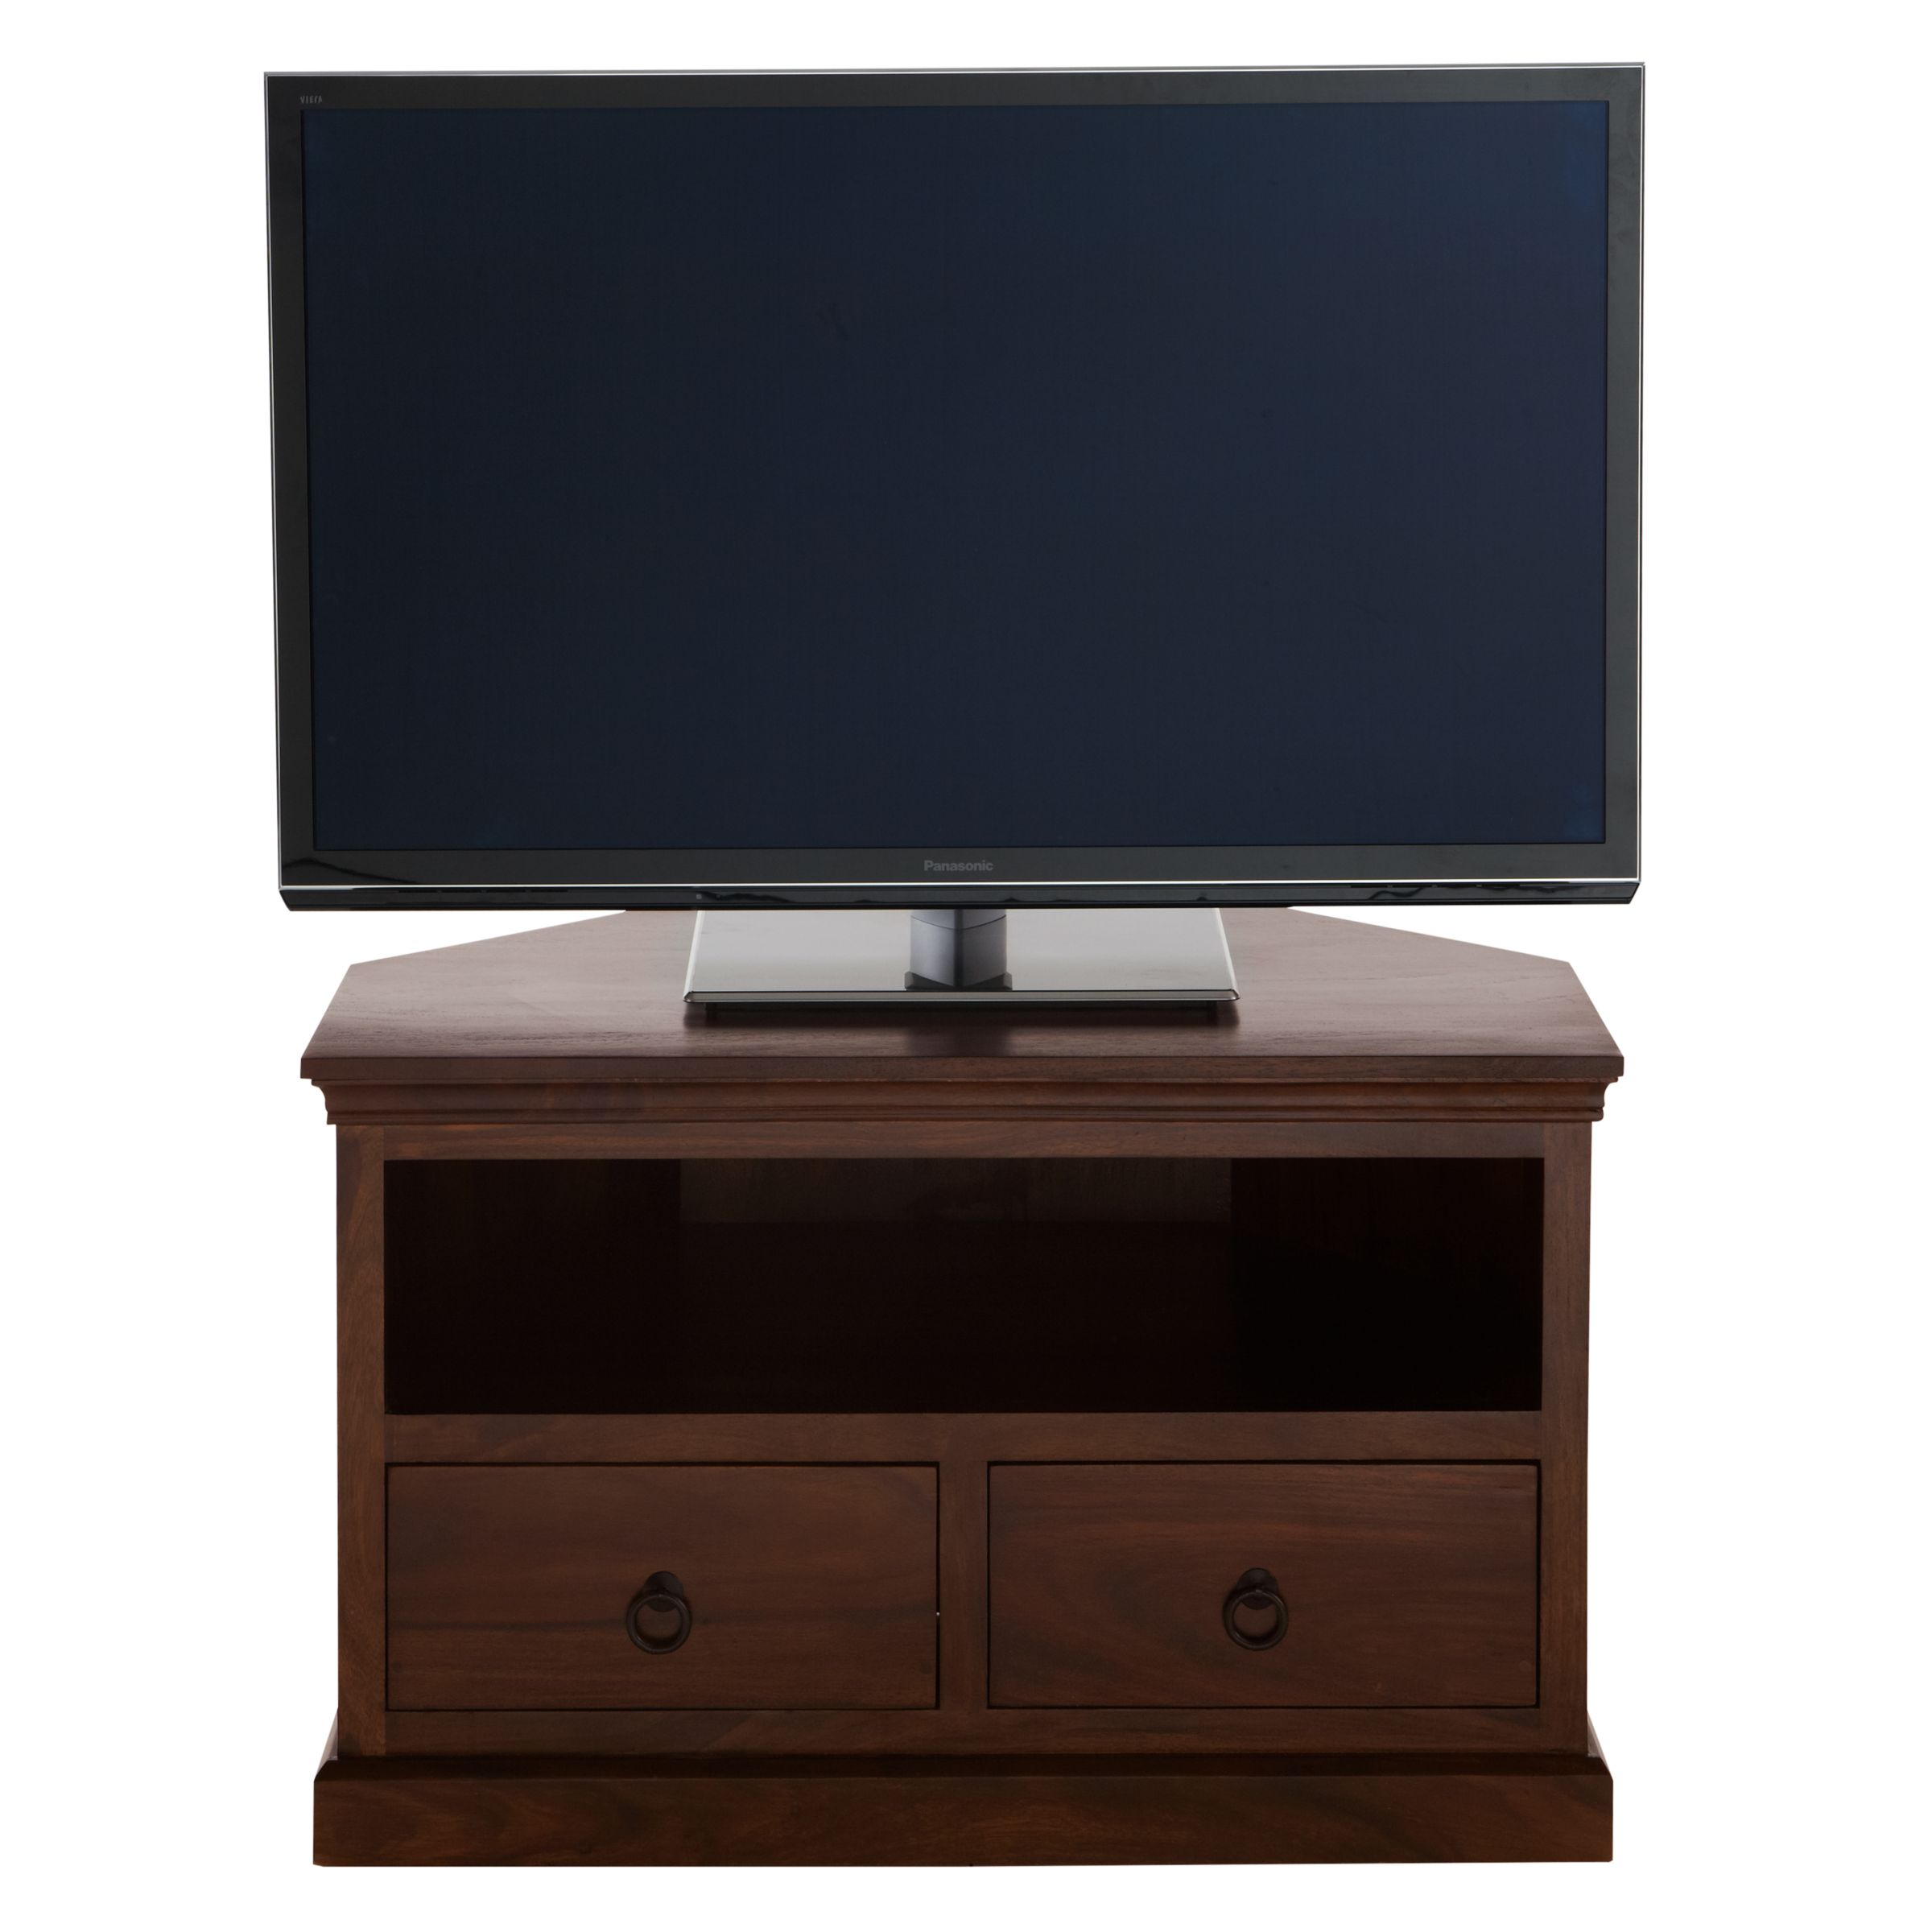 John Lewis Partners Maharani Corner Tv Stand For Tvs Up To